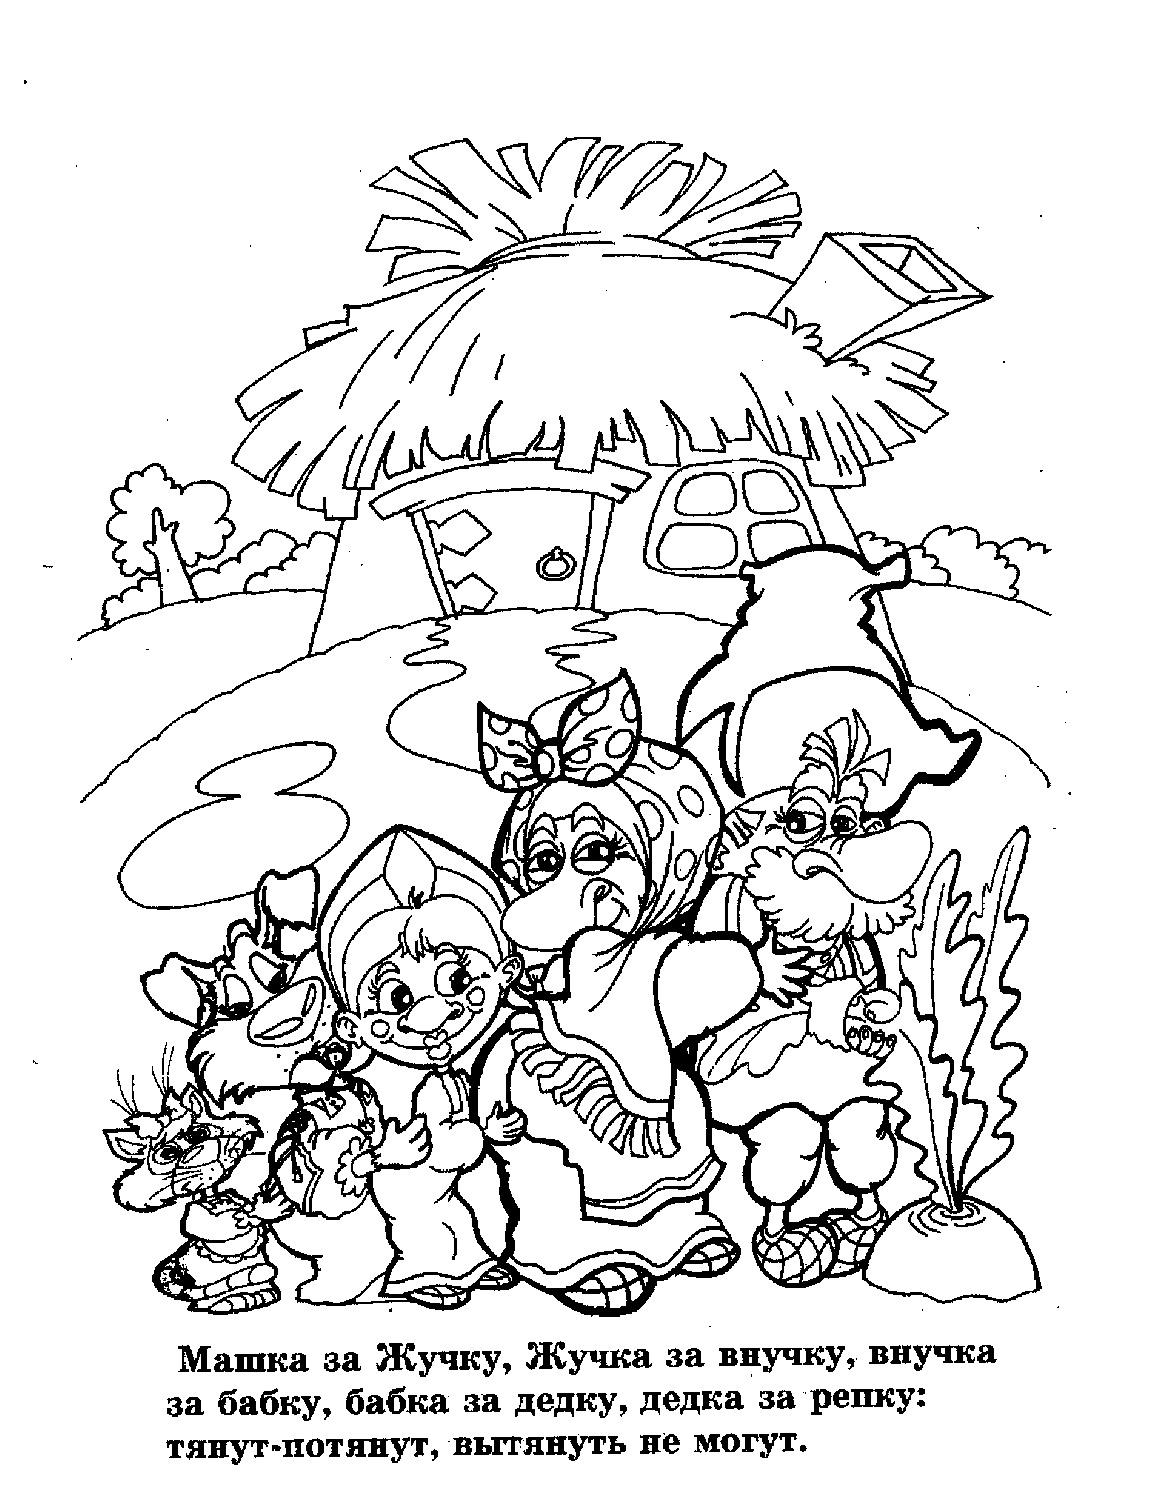 Coloring coloring pages on the story turnip turnip pulled all without a mouse